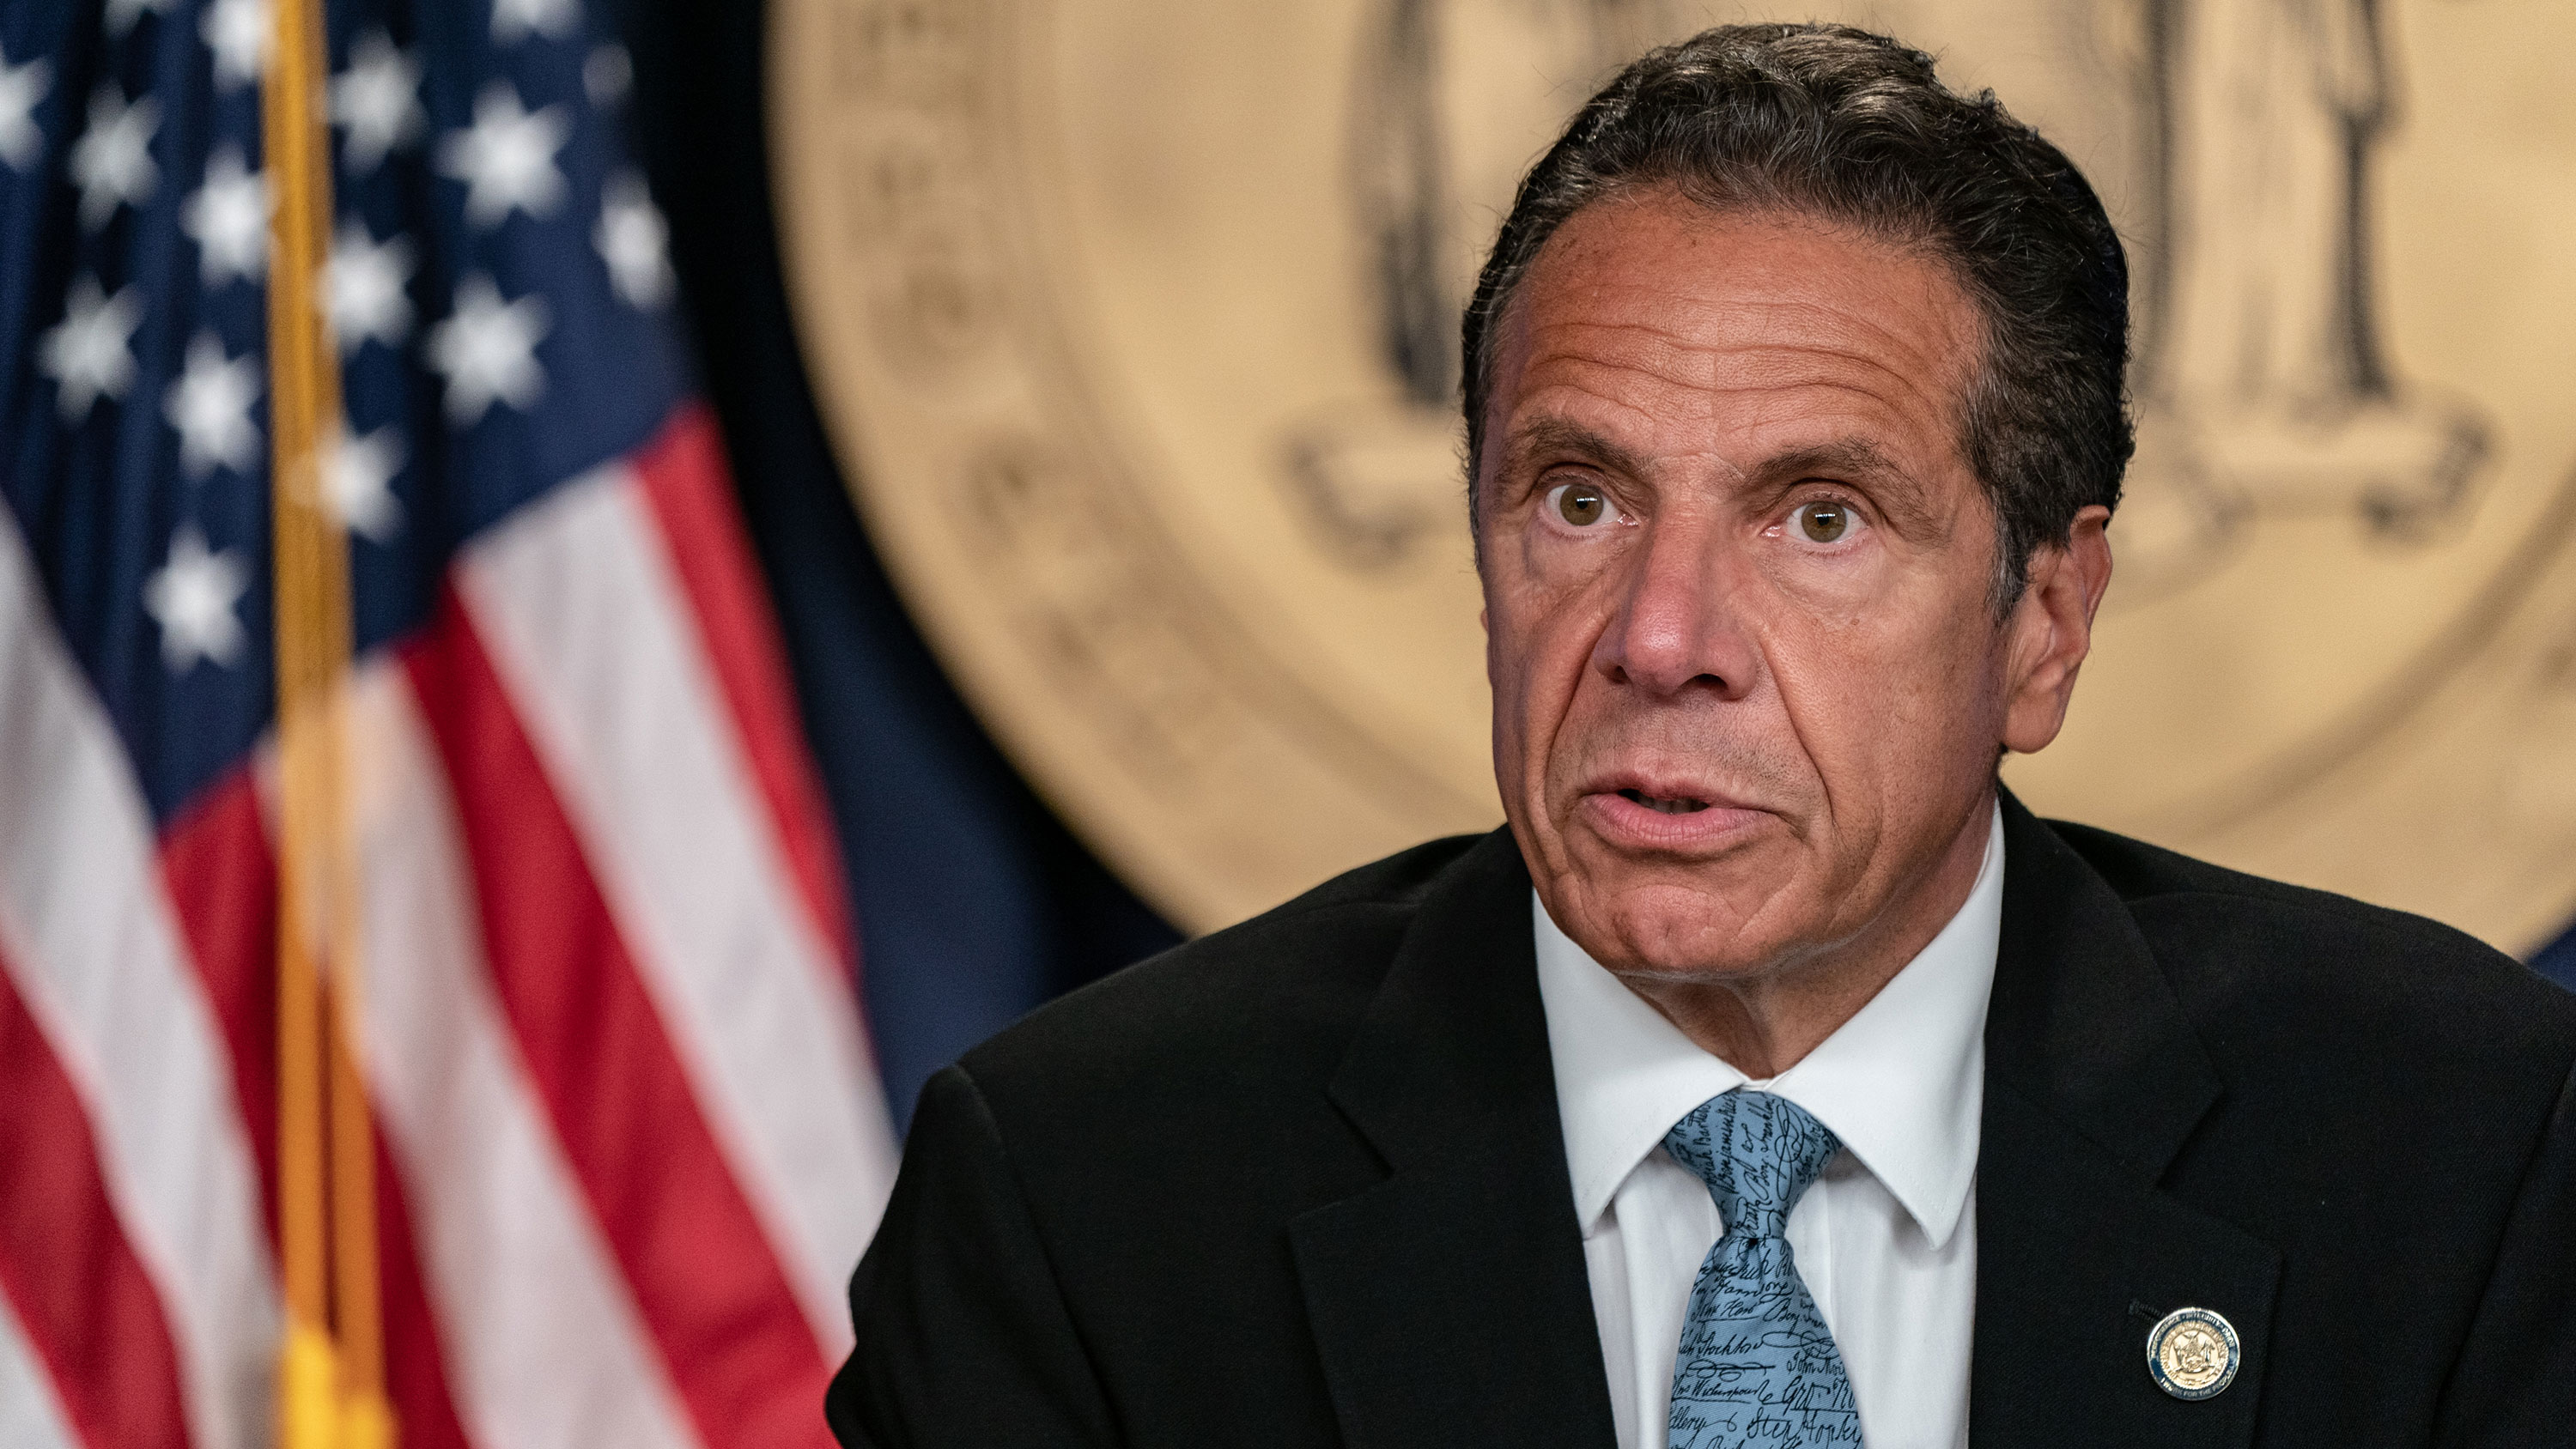 New York state lawmakers moving to repeal Cuomo's expanded executive powers